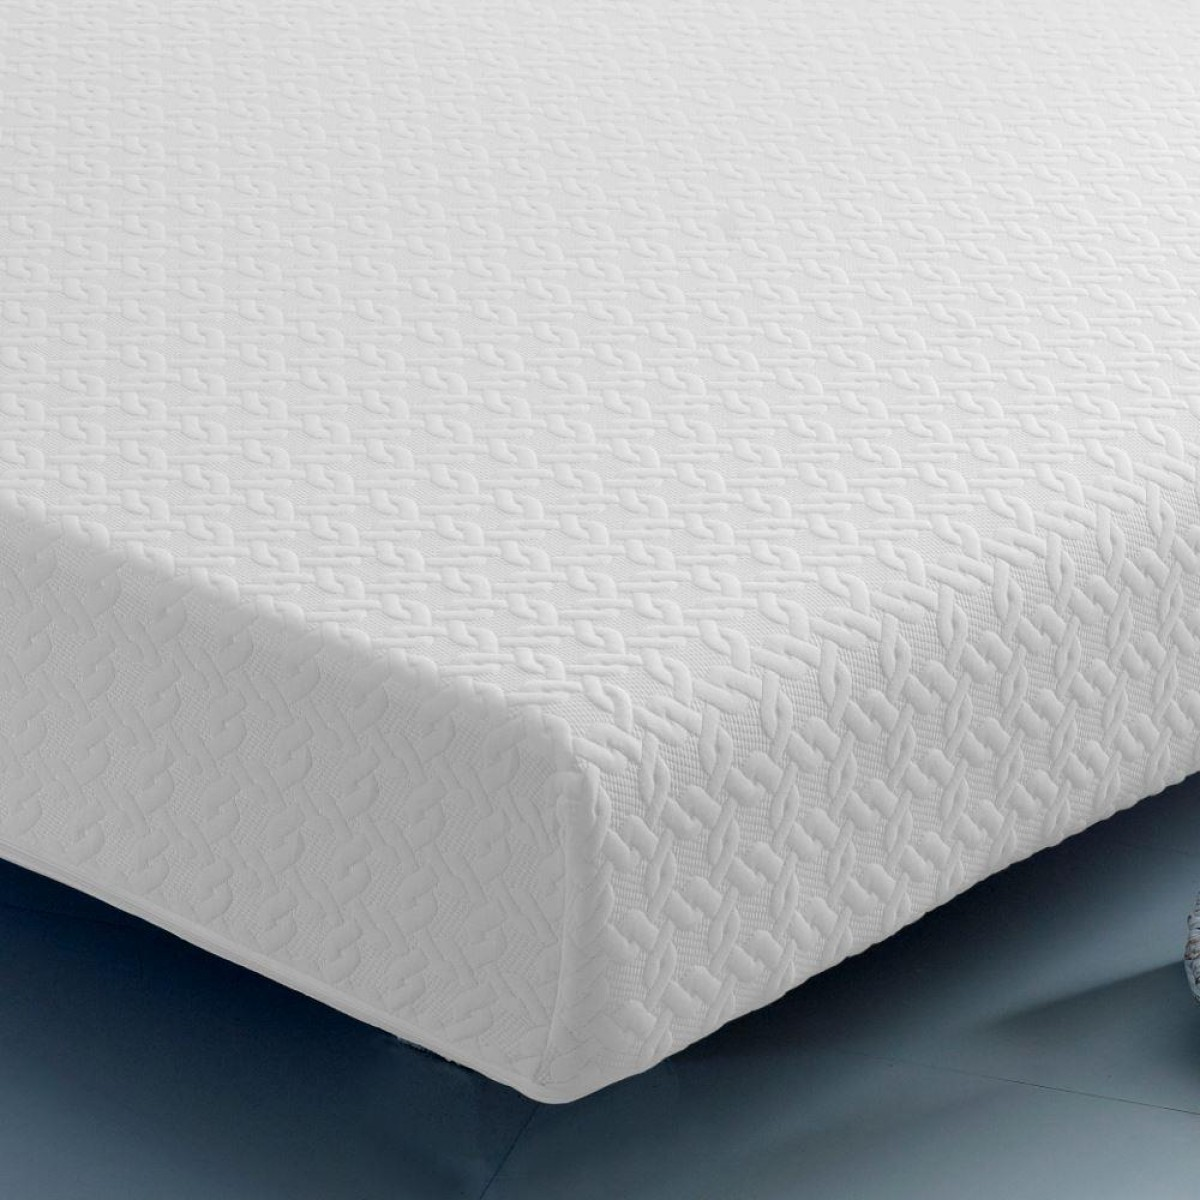 Extra Firm Mattress Topper Ultimate Ortho Reflex Foam Support Orthopaedic Rolled Extra Firm